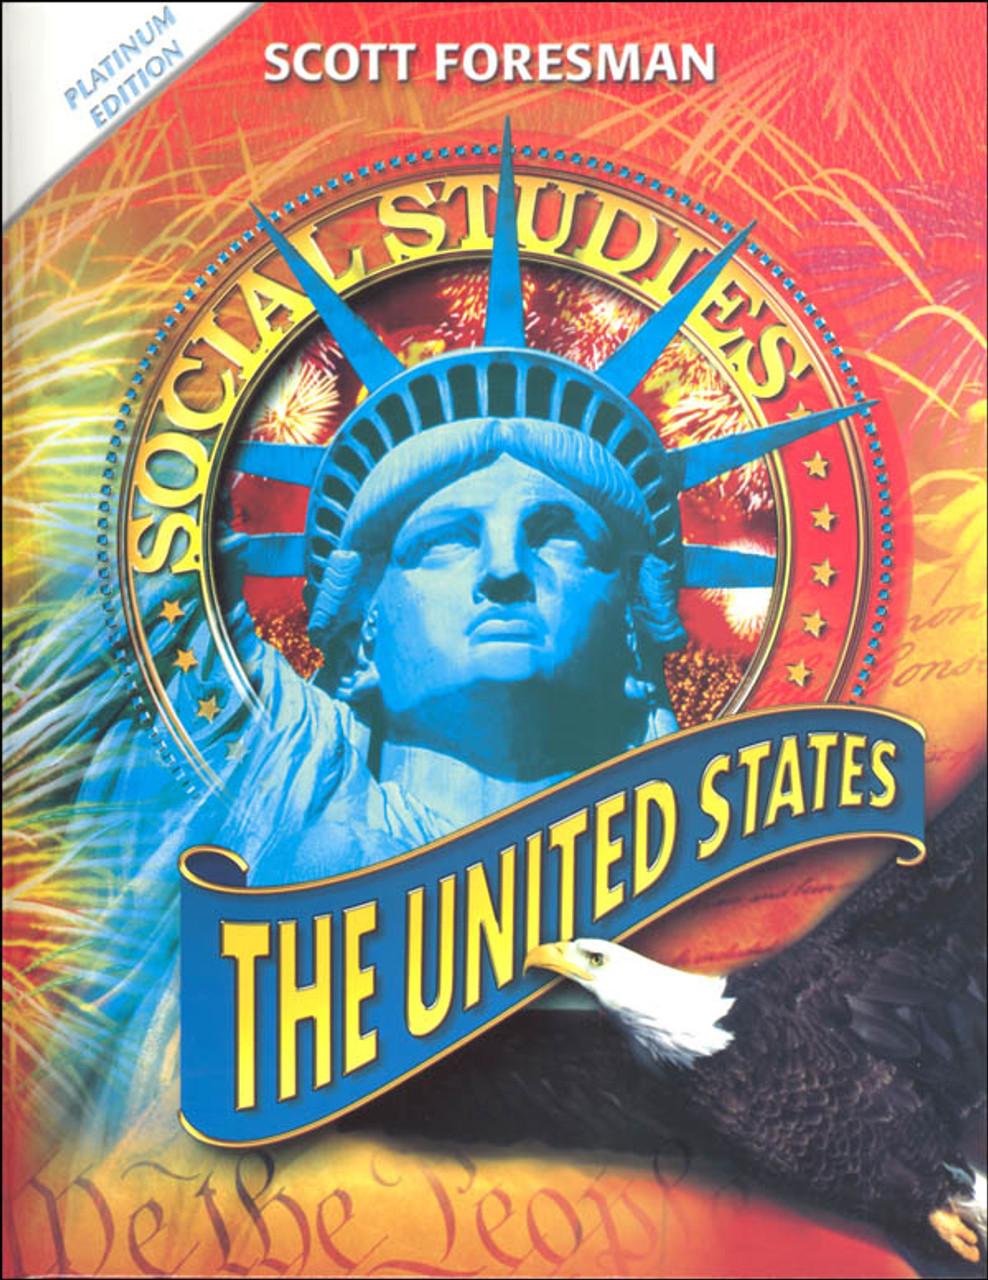 Scott Foresman Social Studies Grade 5 Student Edition- The United States